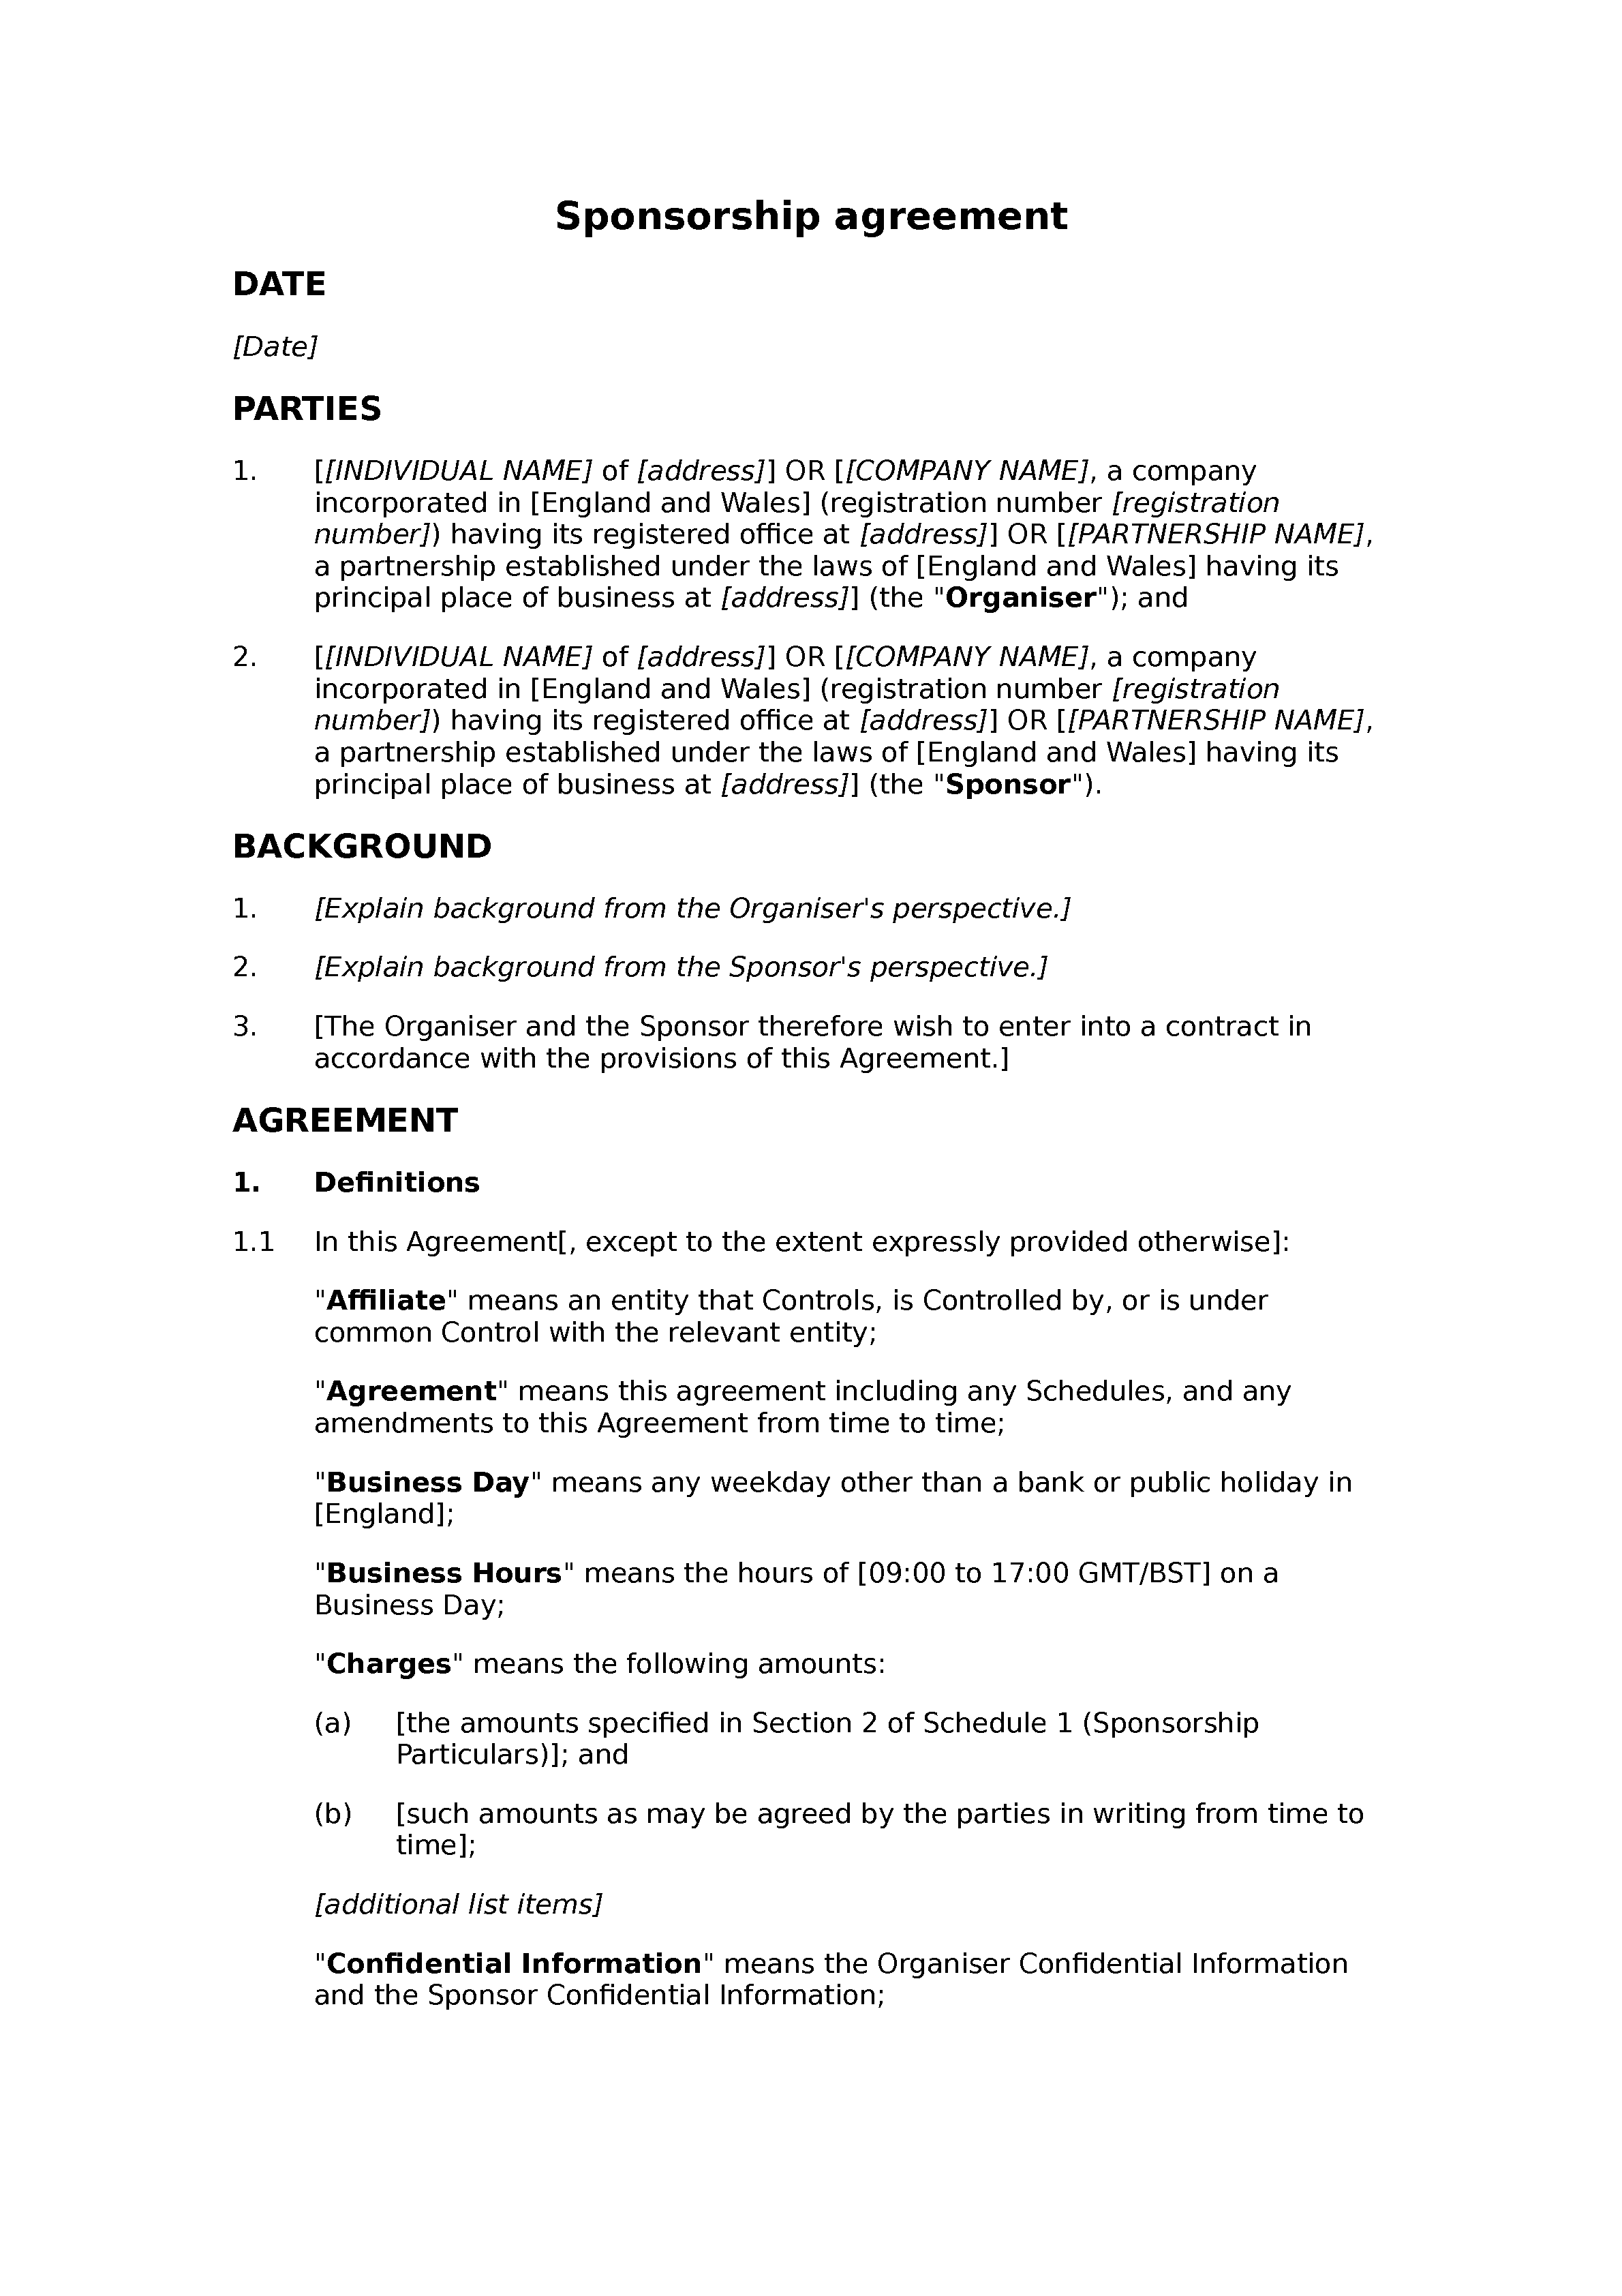 Sponsorship agreement (premium) document preview